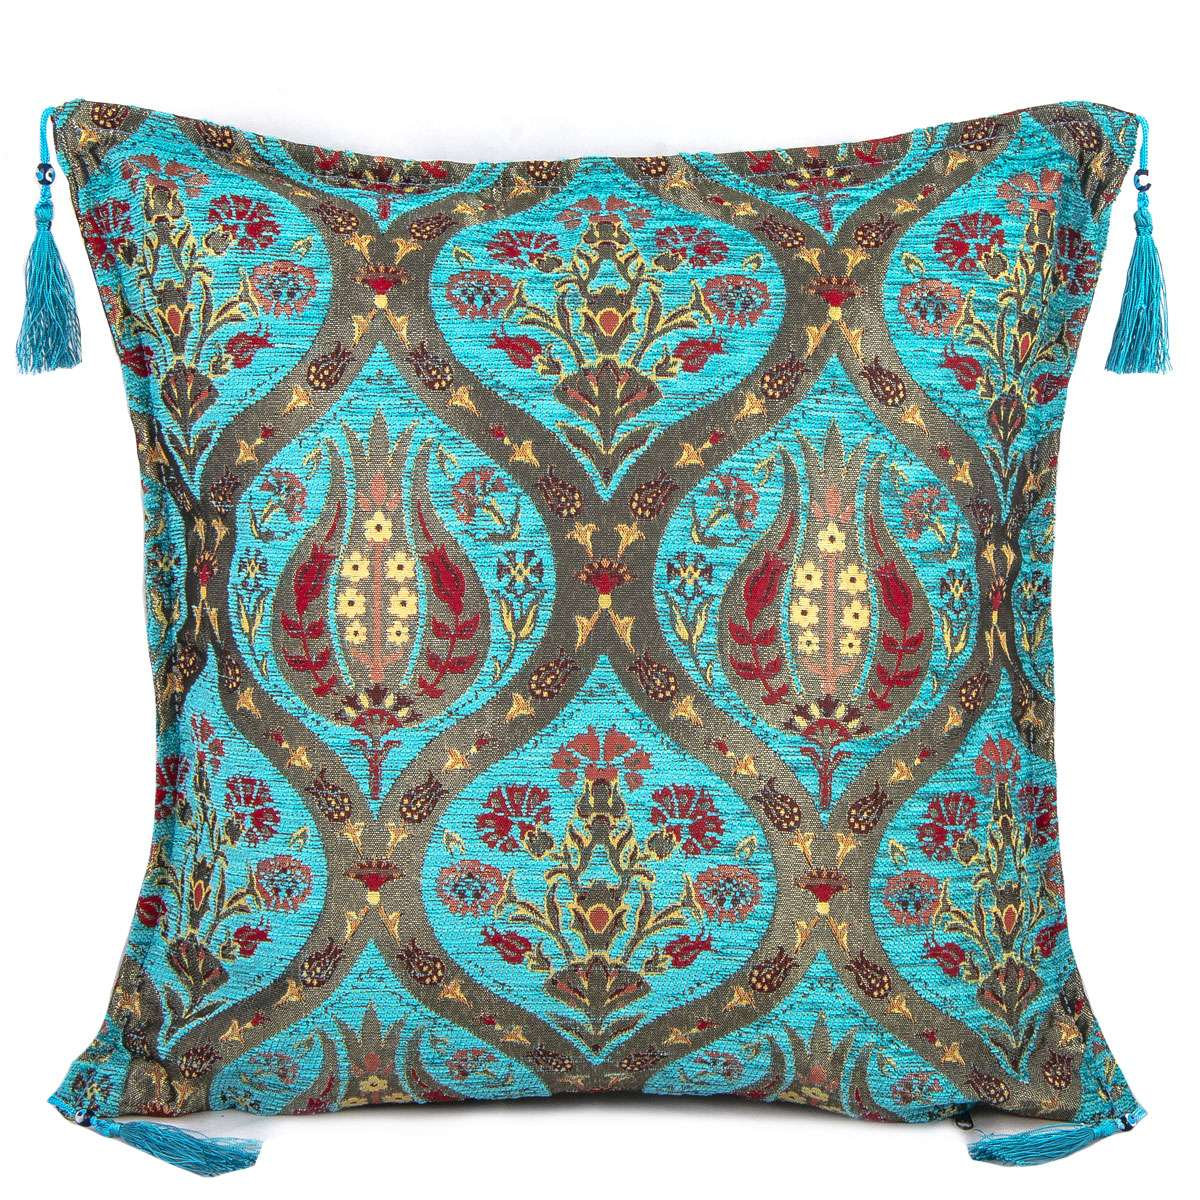 ethnic turkish decorative cushion covers decorative pillow covers 18 x 18 45x45 cm with tassel tulip design no 1 throw pillow cover